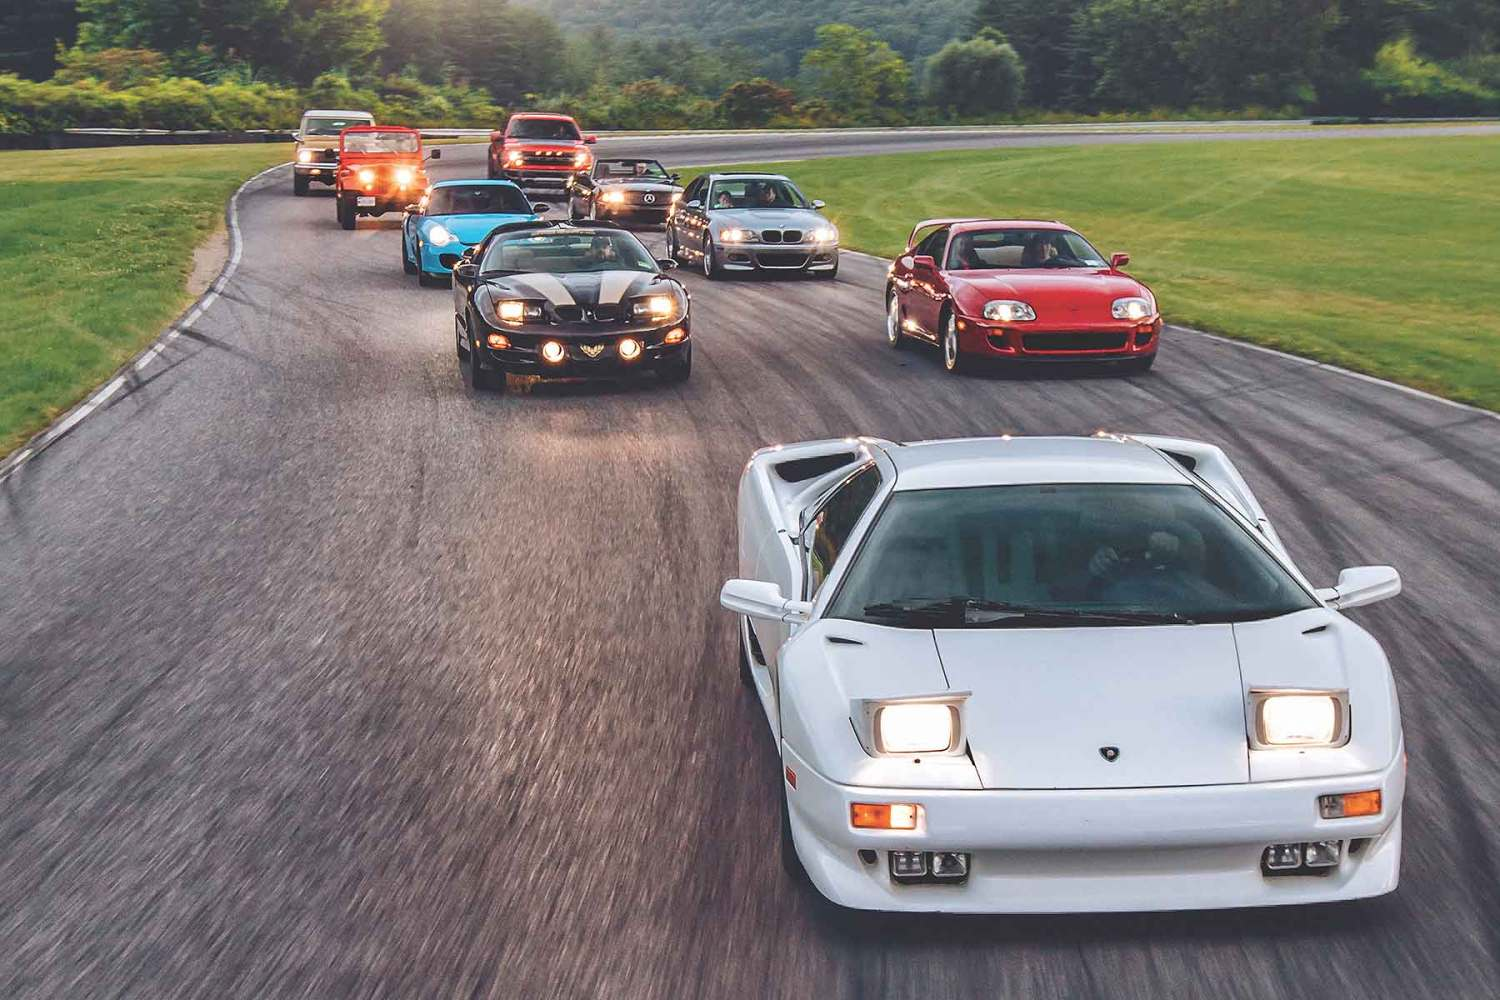 Hagerty's classic cars to buy now